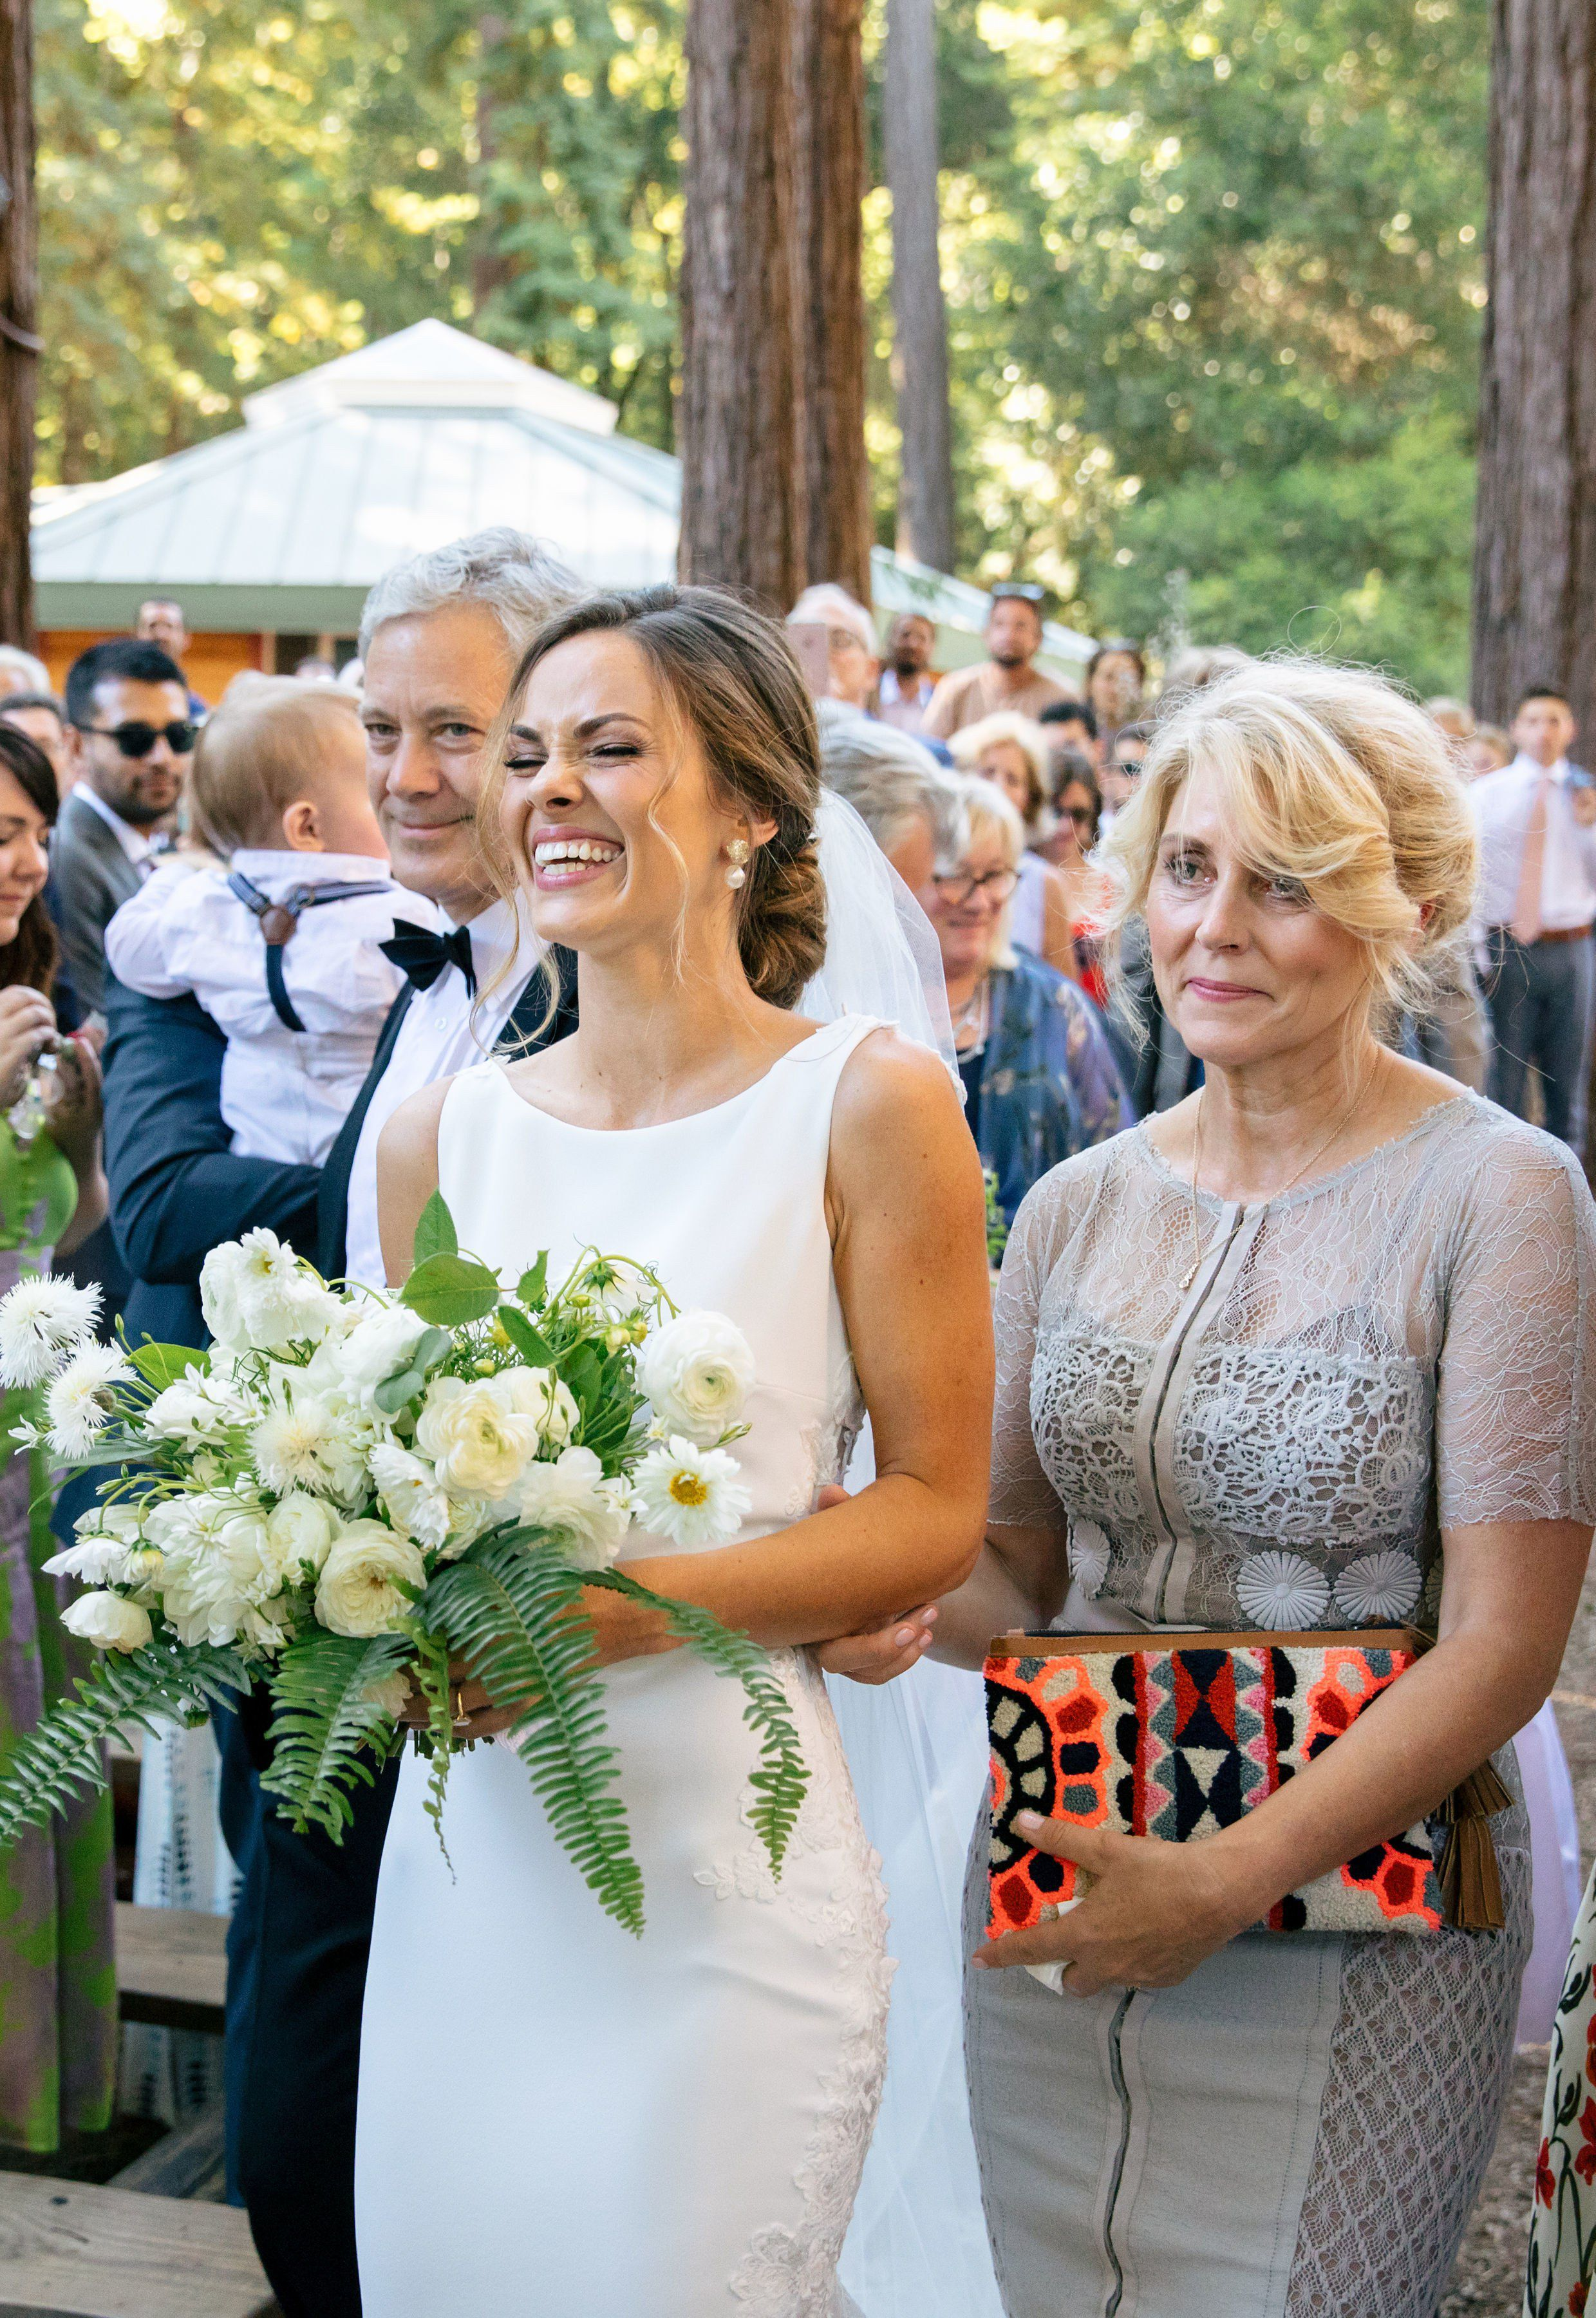 Traditional Wedding Recessional Songs.115 Wedding Processional Songs To Set The Tone For A Magical Day